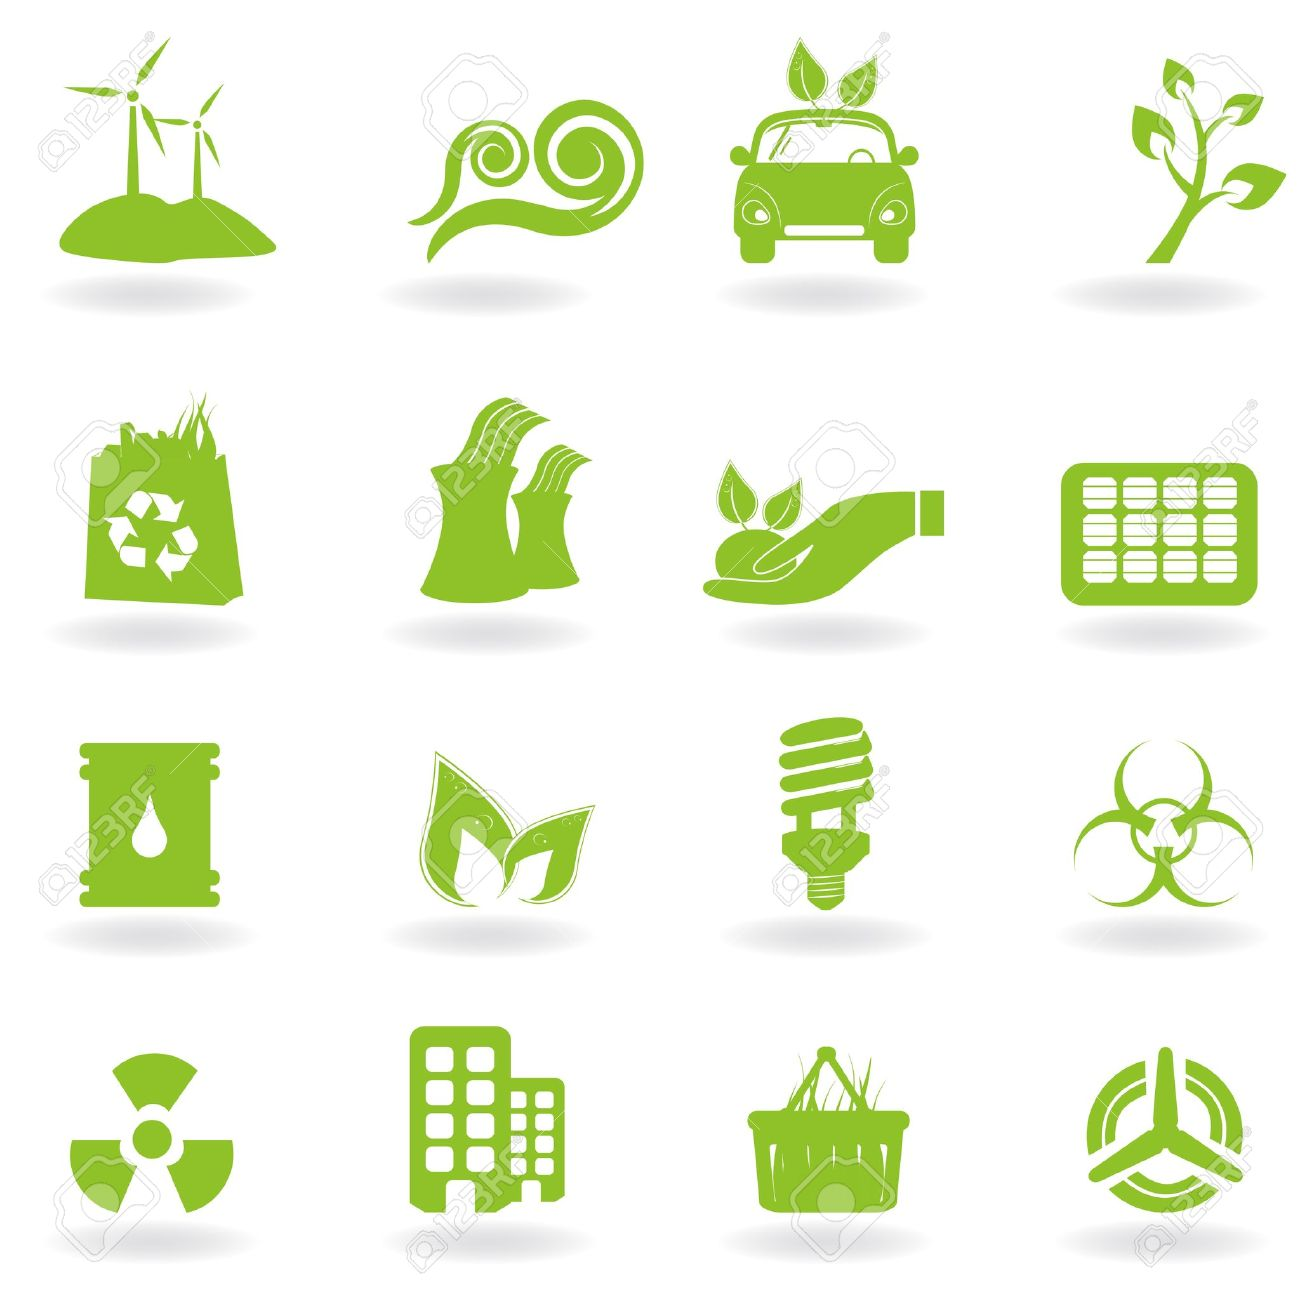 Eco And Green Environment Icons Royalty Free Cliparts, Vectors.